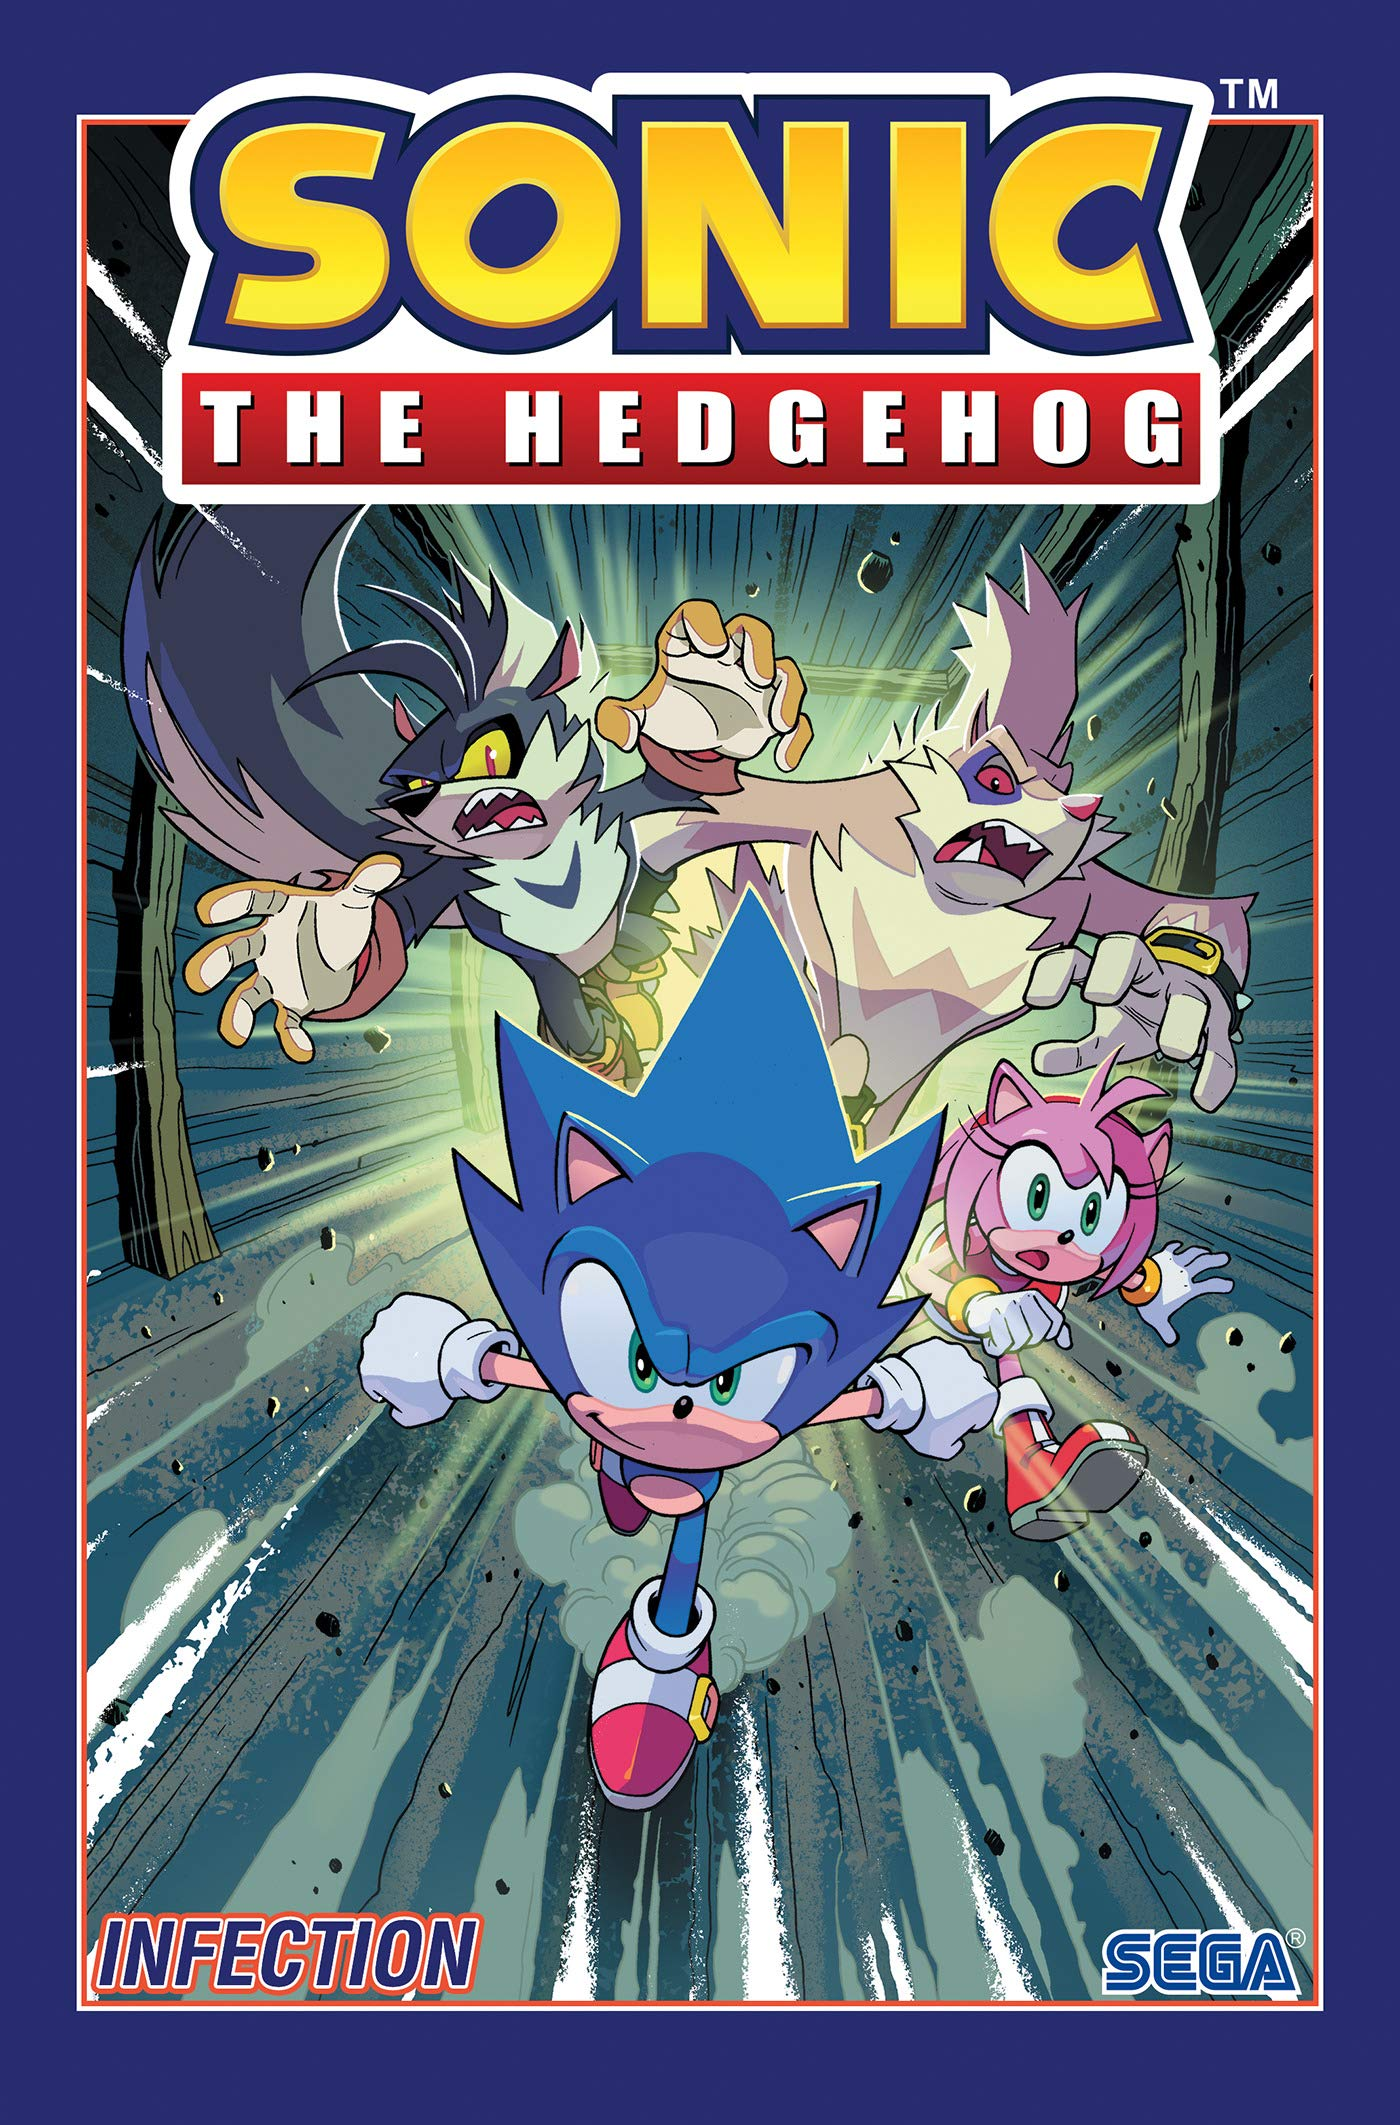 Amazon Com Sonic The Hedgehog Vol 4 Infection 9781684055449 Flynn Ian Thomas Adam Bryce Yardley Tracy Lawrence Jack Skelly Diana Books